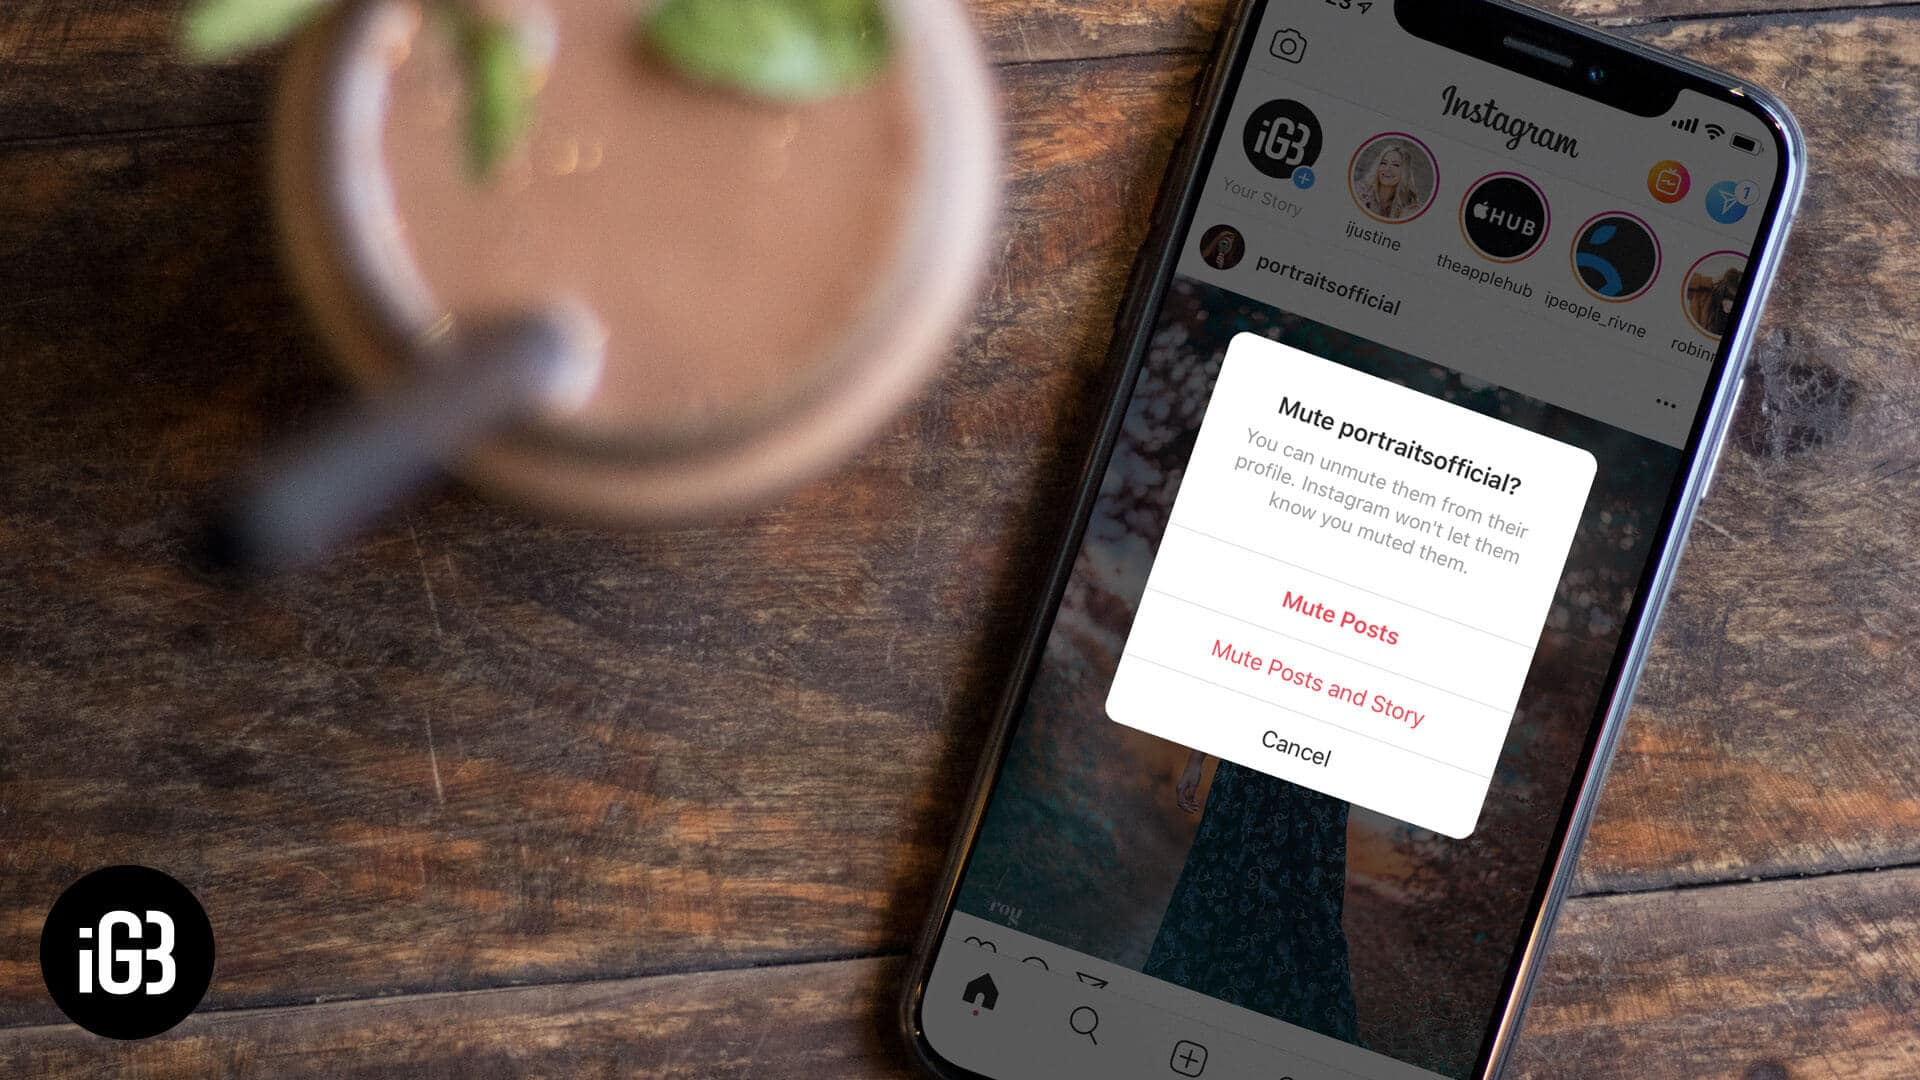 How to Hide Instagram Posts or Stories on iPhone Without Unfollowing Accounts